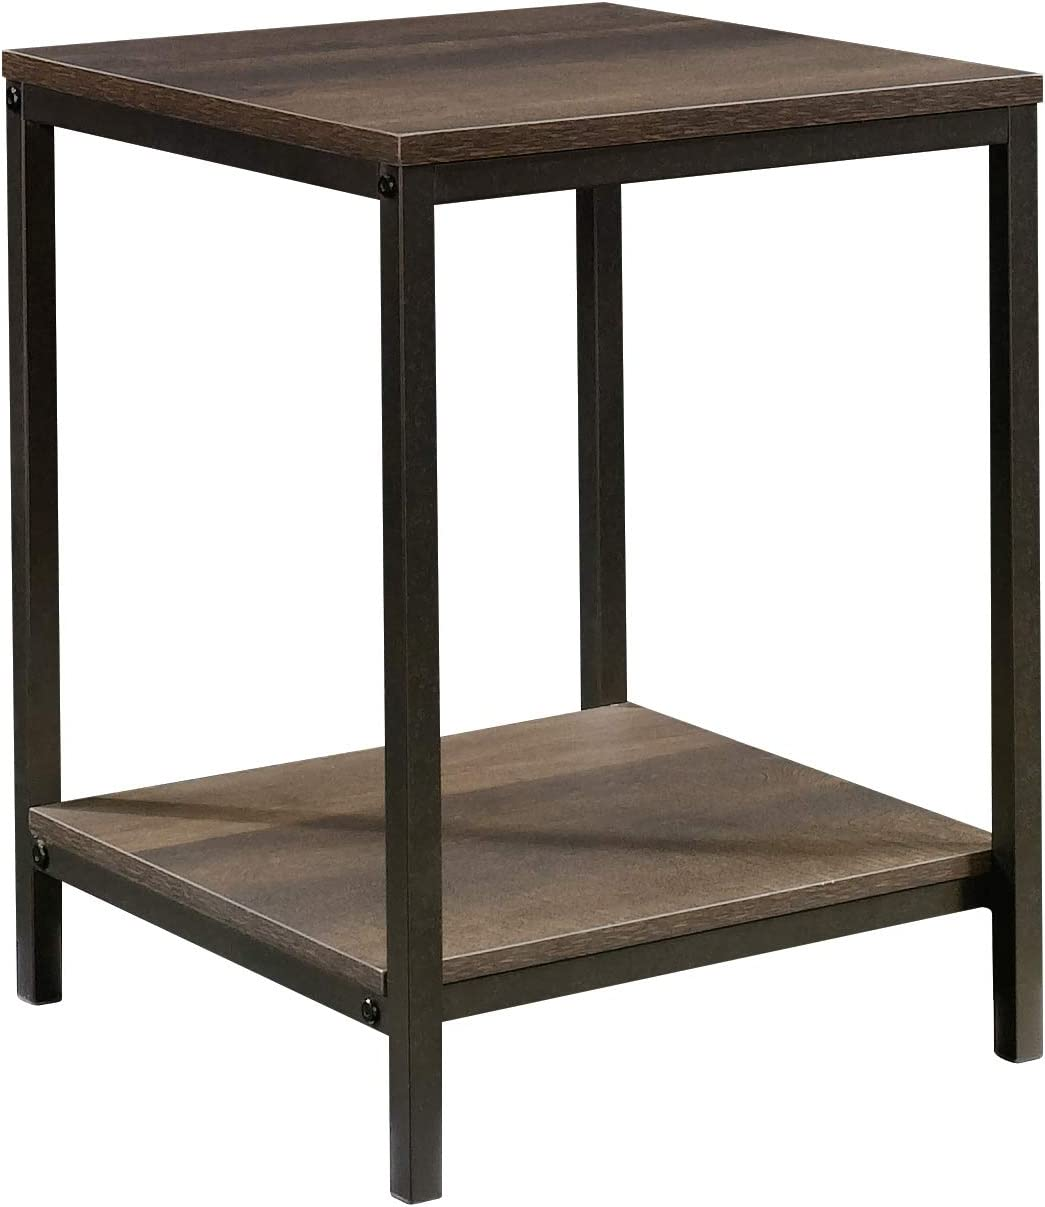 Sauder North Avenue Side Table, Smoked Oak finish